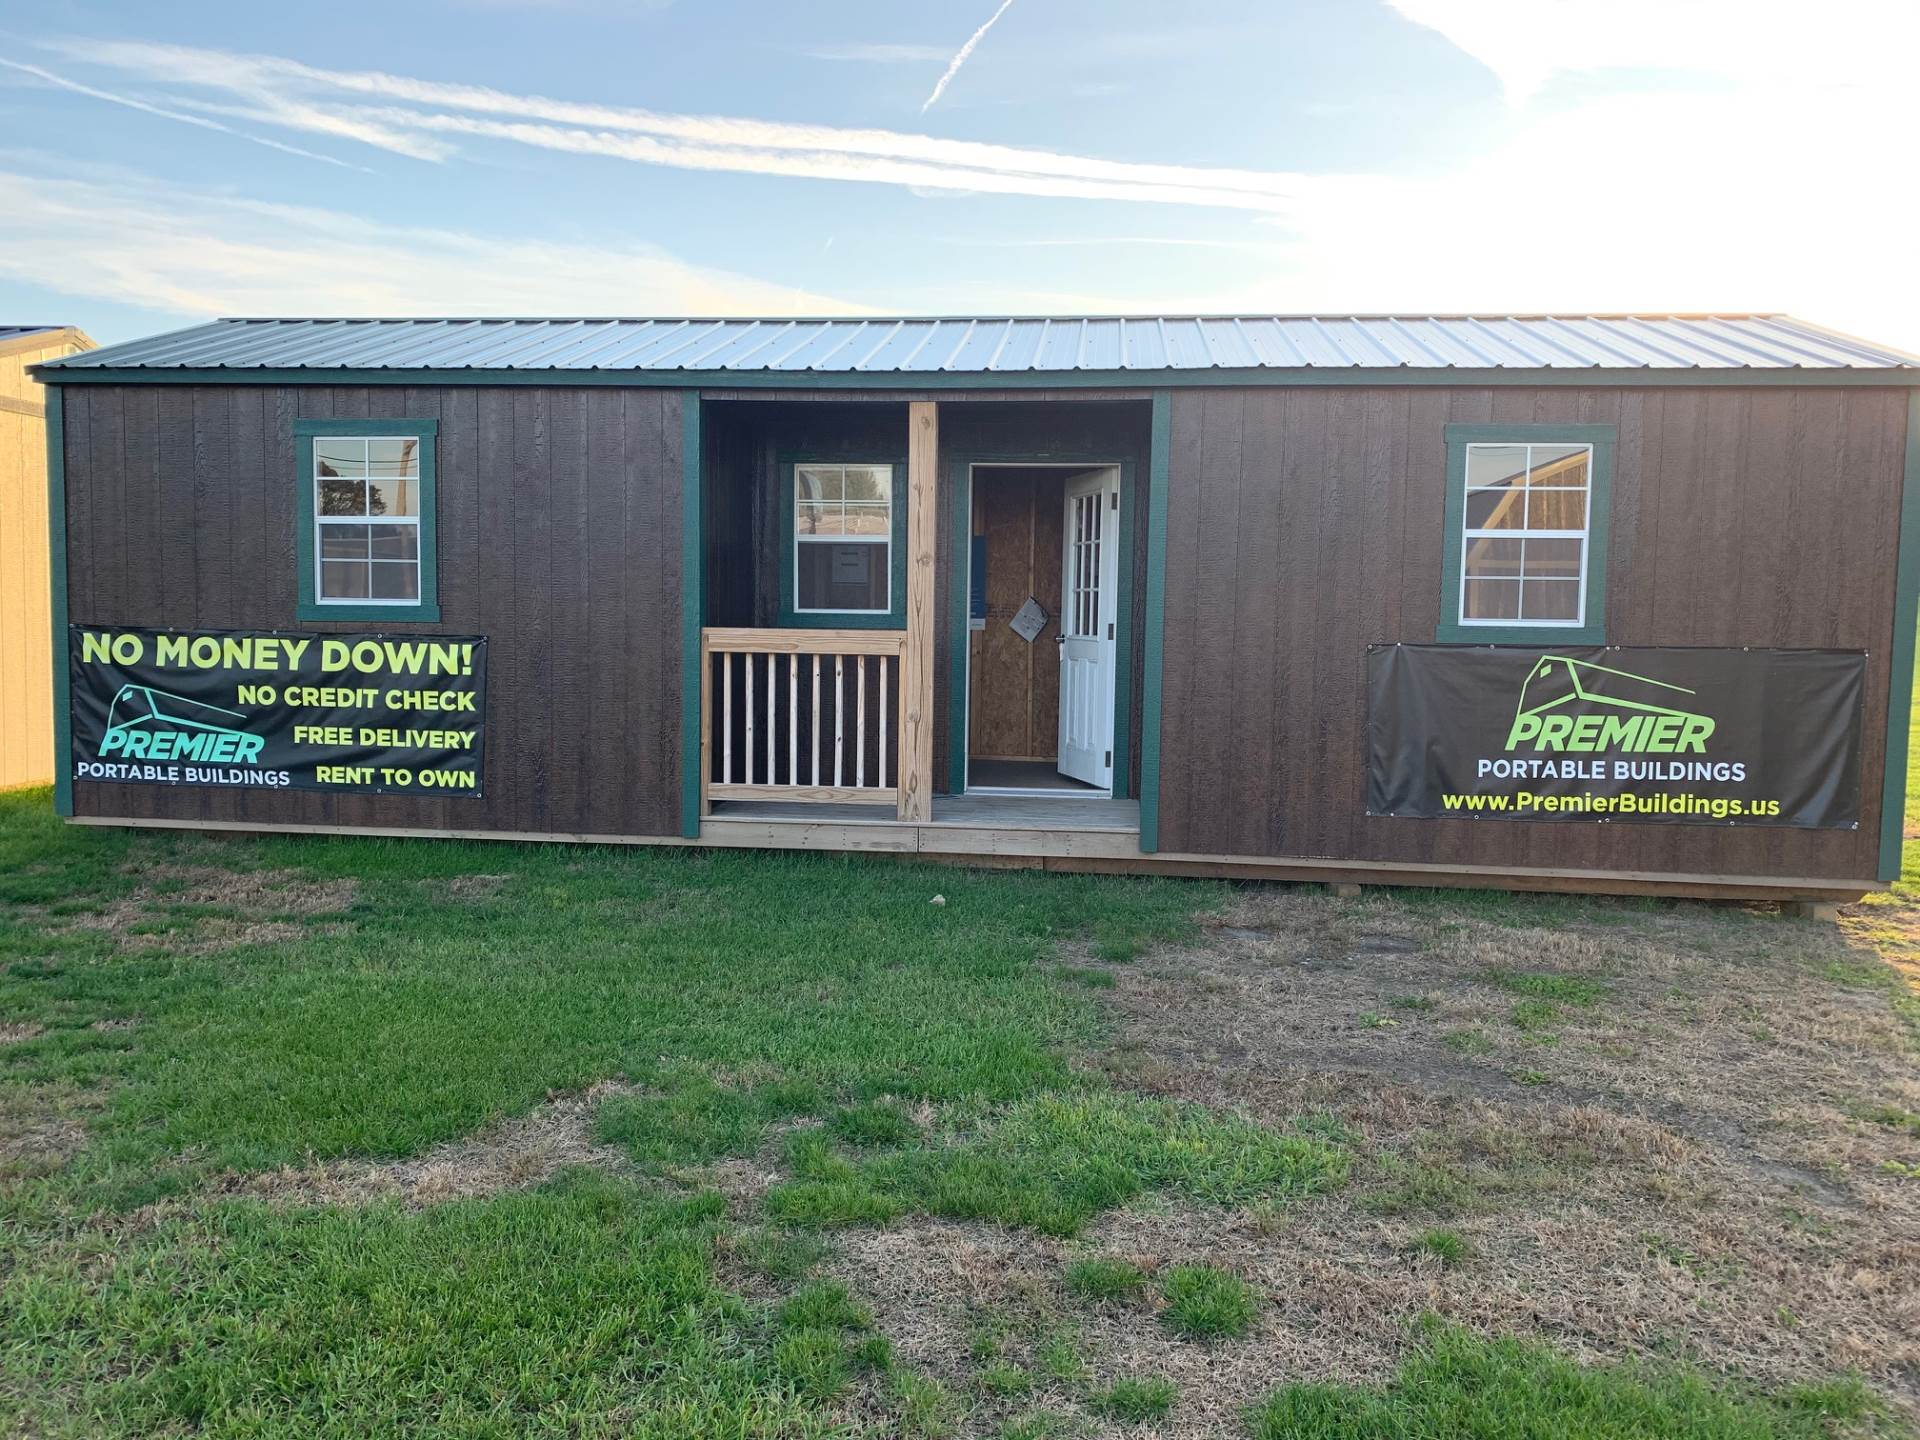 2019 PREMIER PORTABLE BUILDINGS BUILDINGS in Independence, Iowa